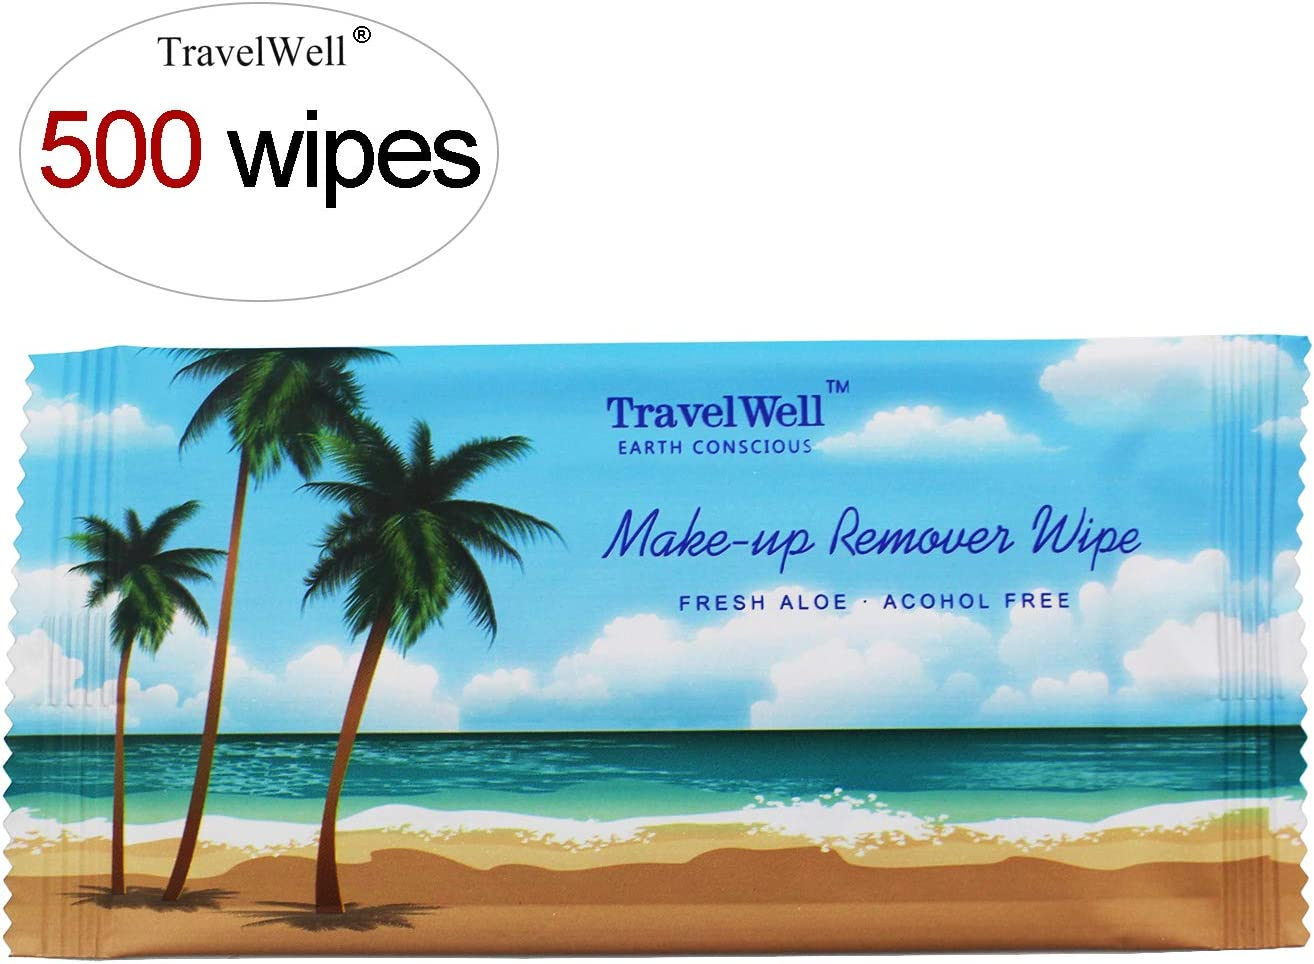 TRAVELWELL Cleanings & Make-Up Remover Wipes Nartural Fresh Aloe Acohol Free Travel Packs Hotel Toiletries Amenities Individually Wrapped, 500 Count per Package